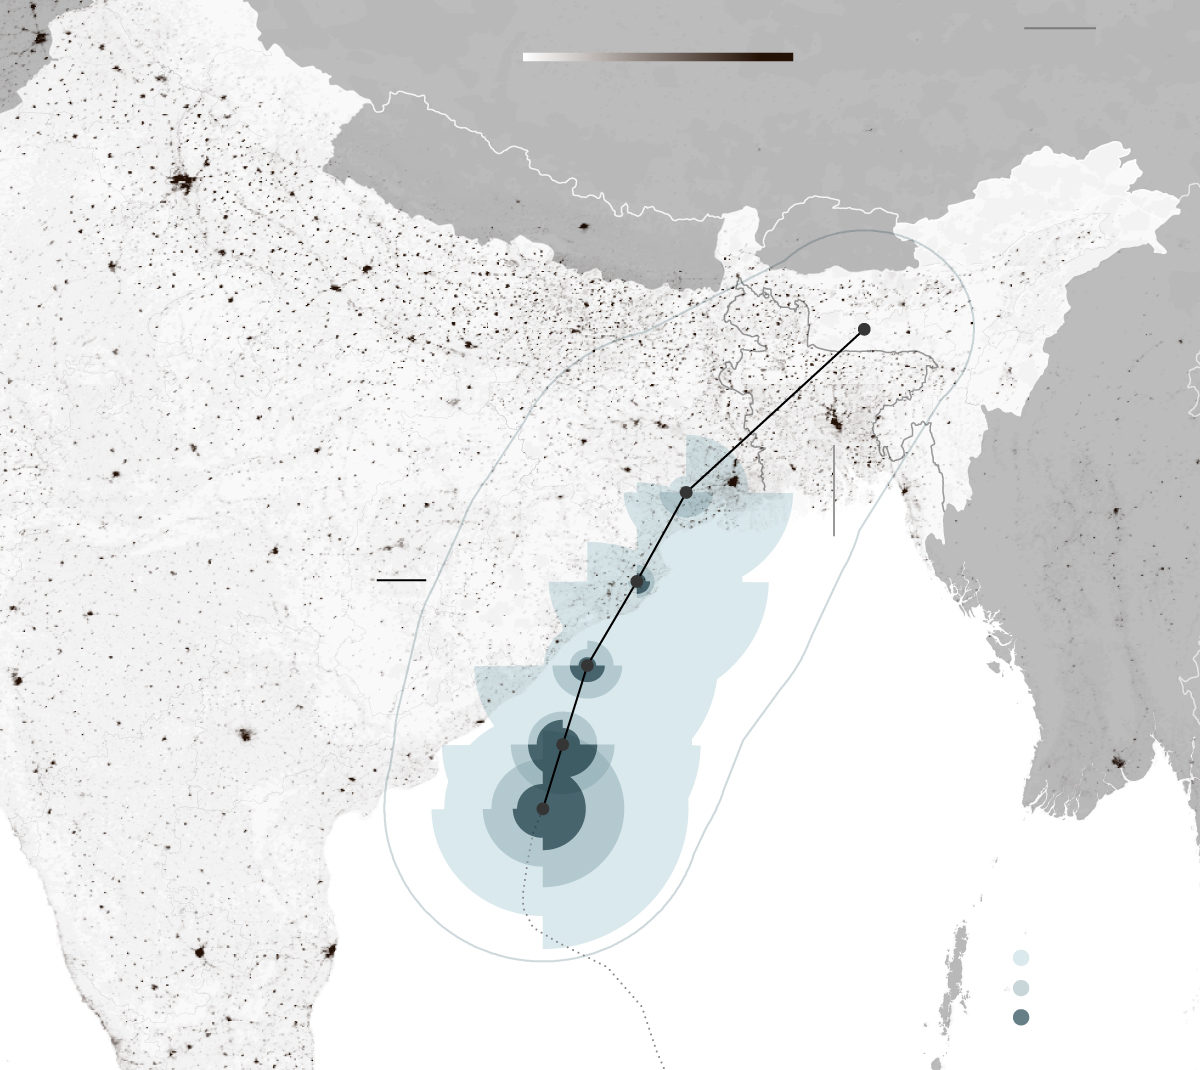 Cyclone Fani in the Bay of Bengal. Cyclone Fani's projected path as of Thursday, May 2, shows the storm tracking along the east coast of India and into Bangladesh.